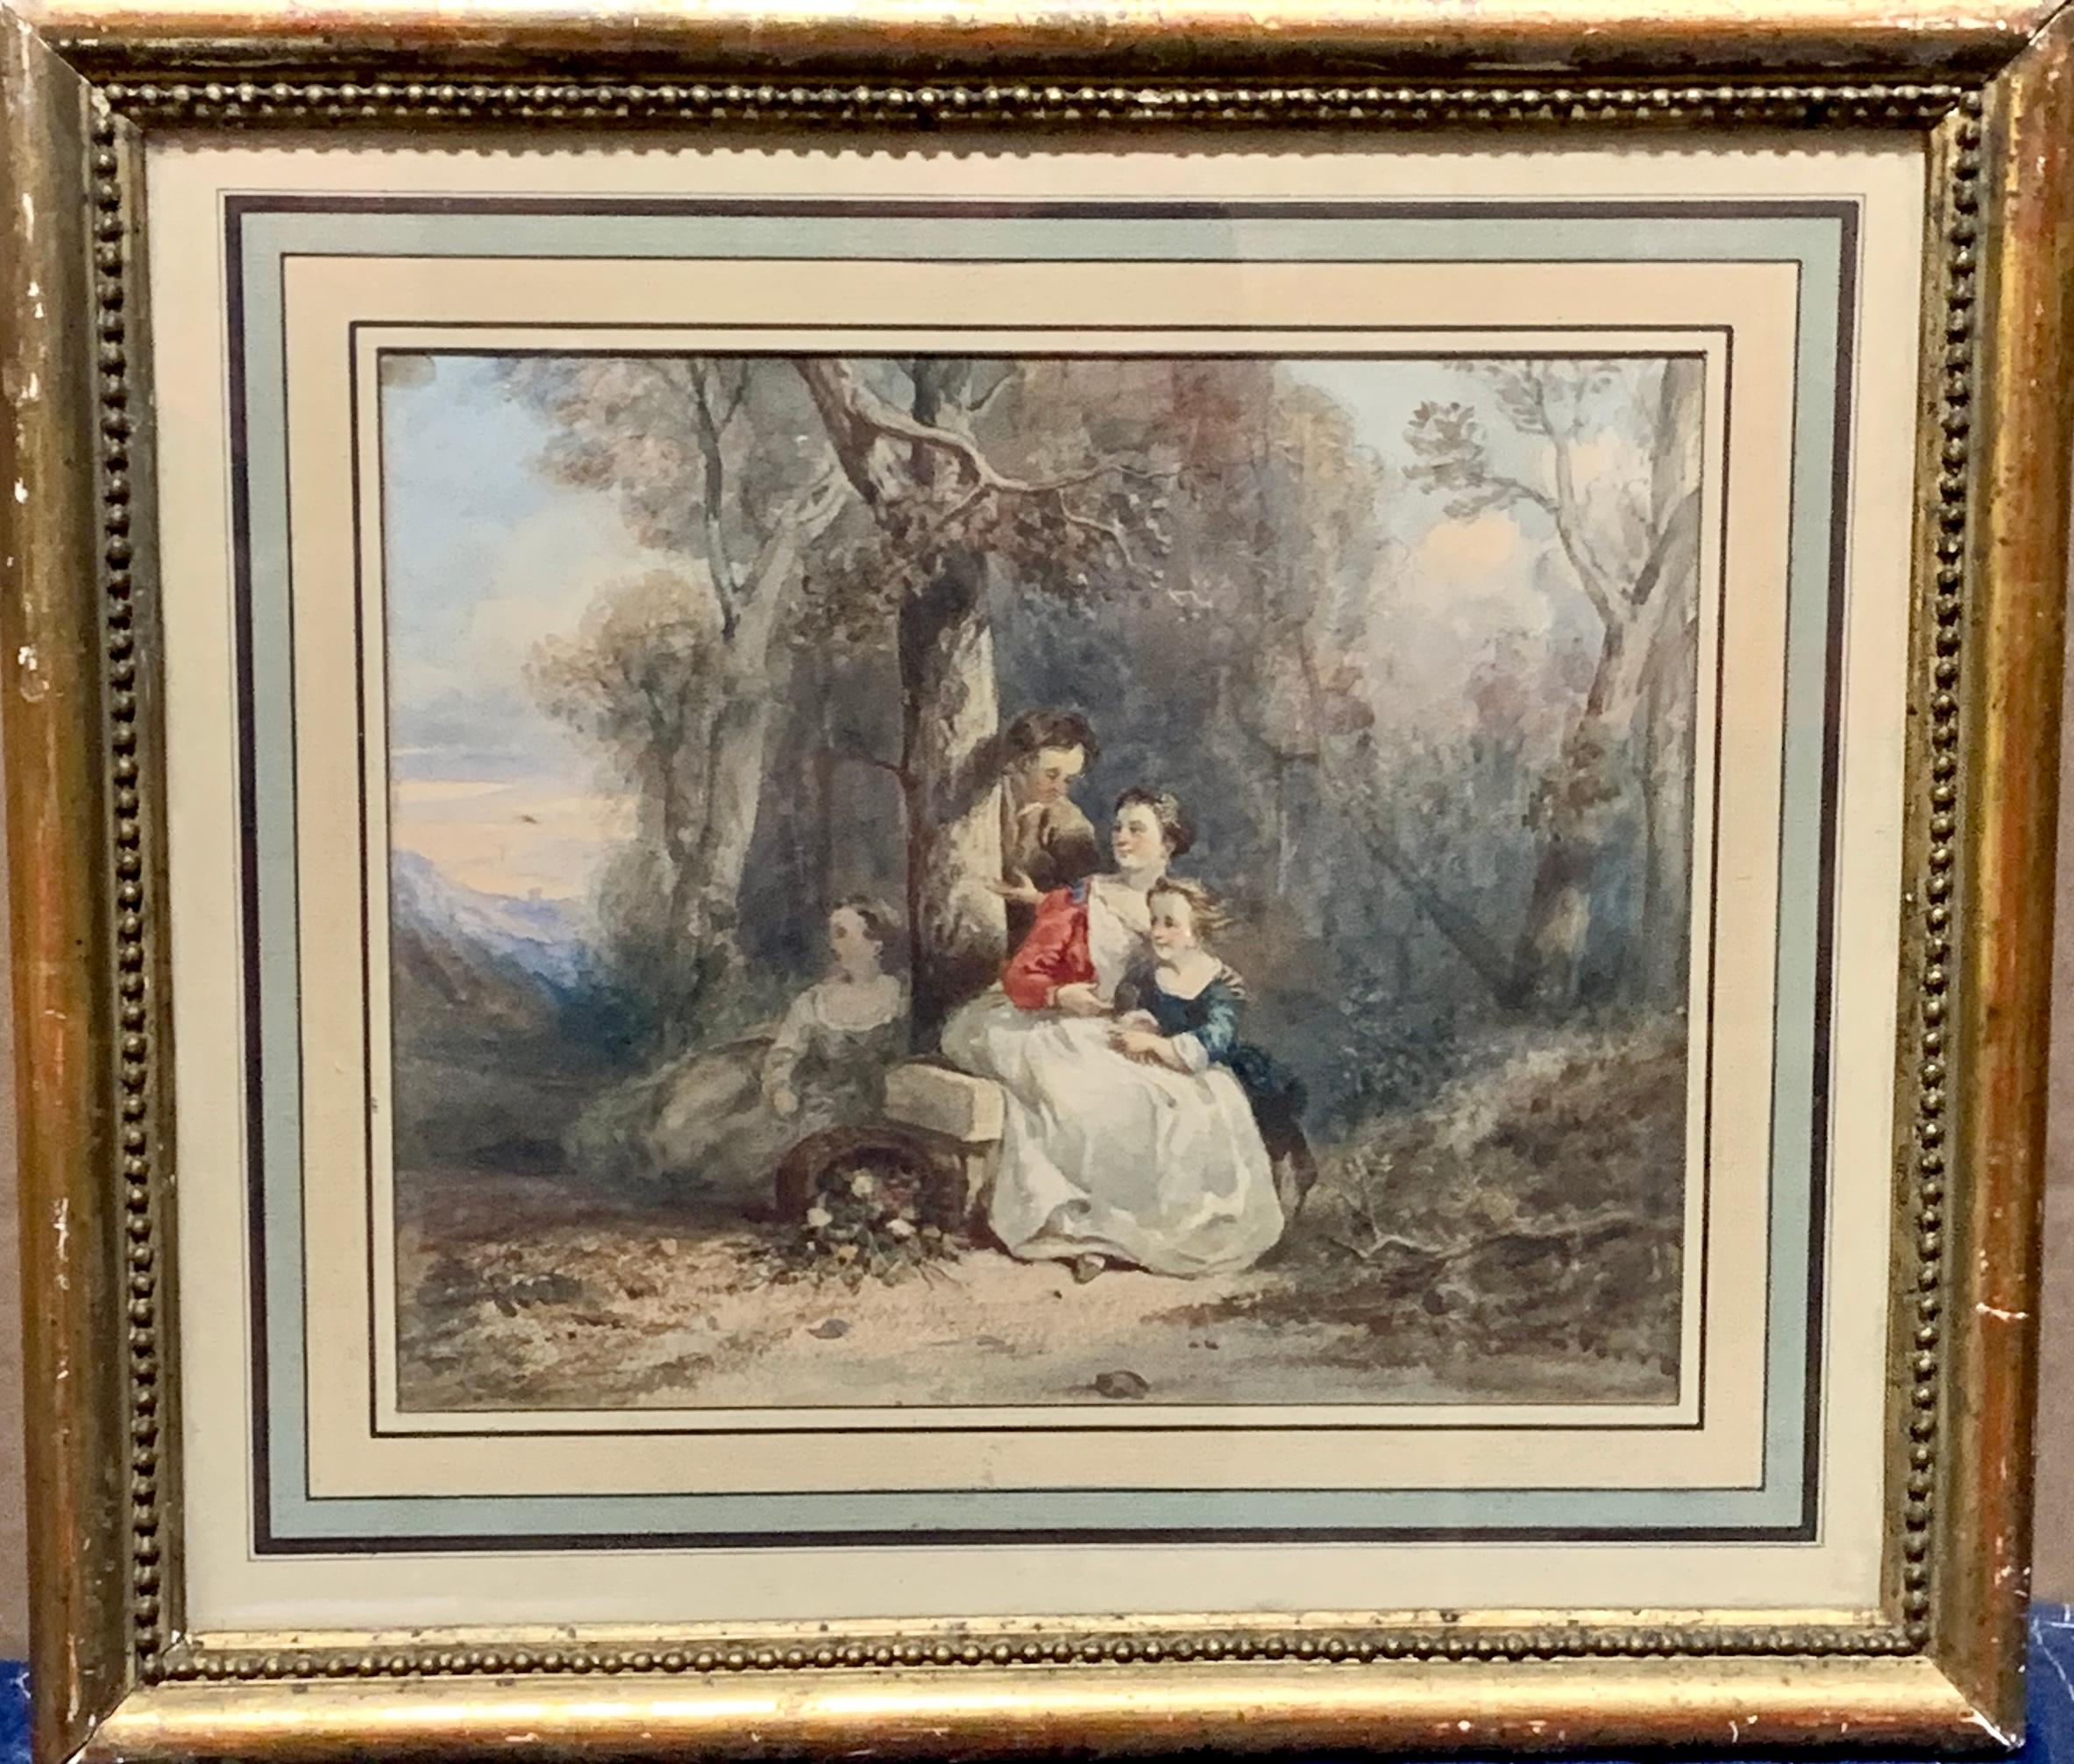 Early 19th century French watercolor of figures in a wooded landscape